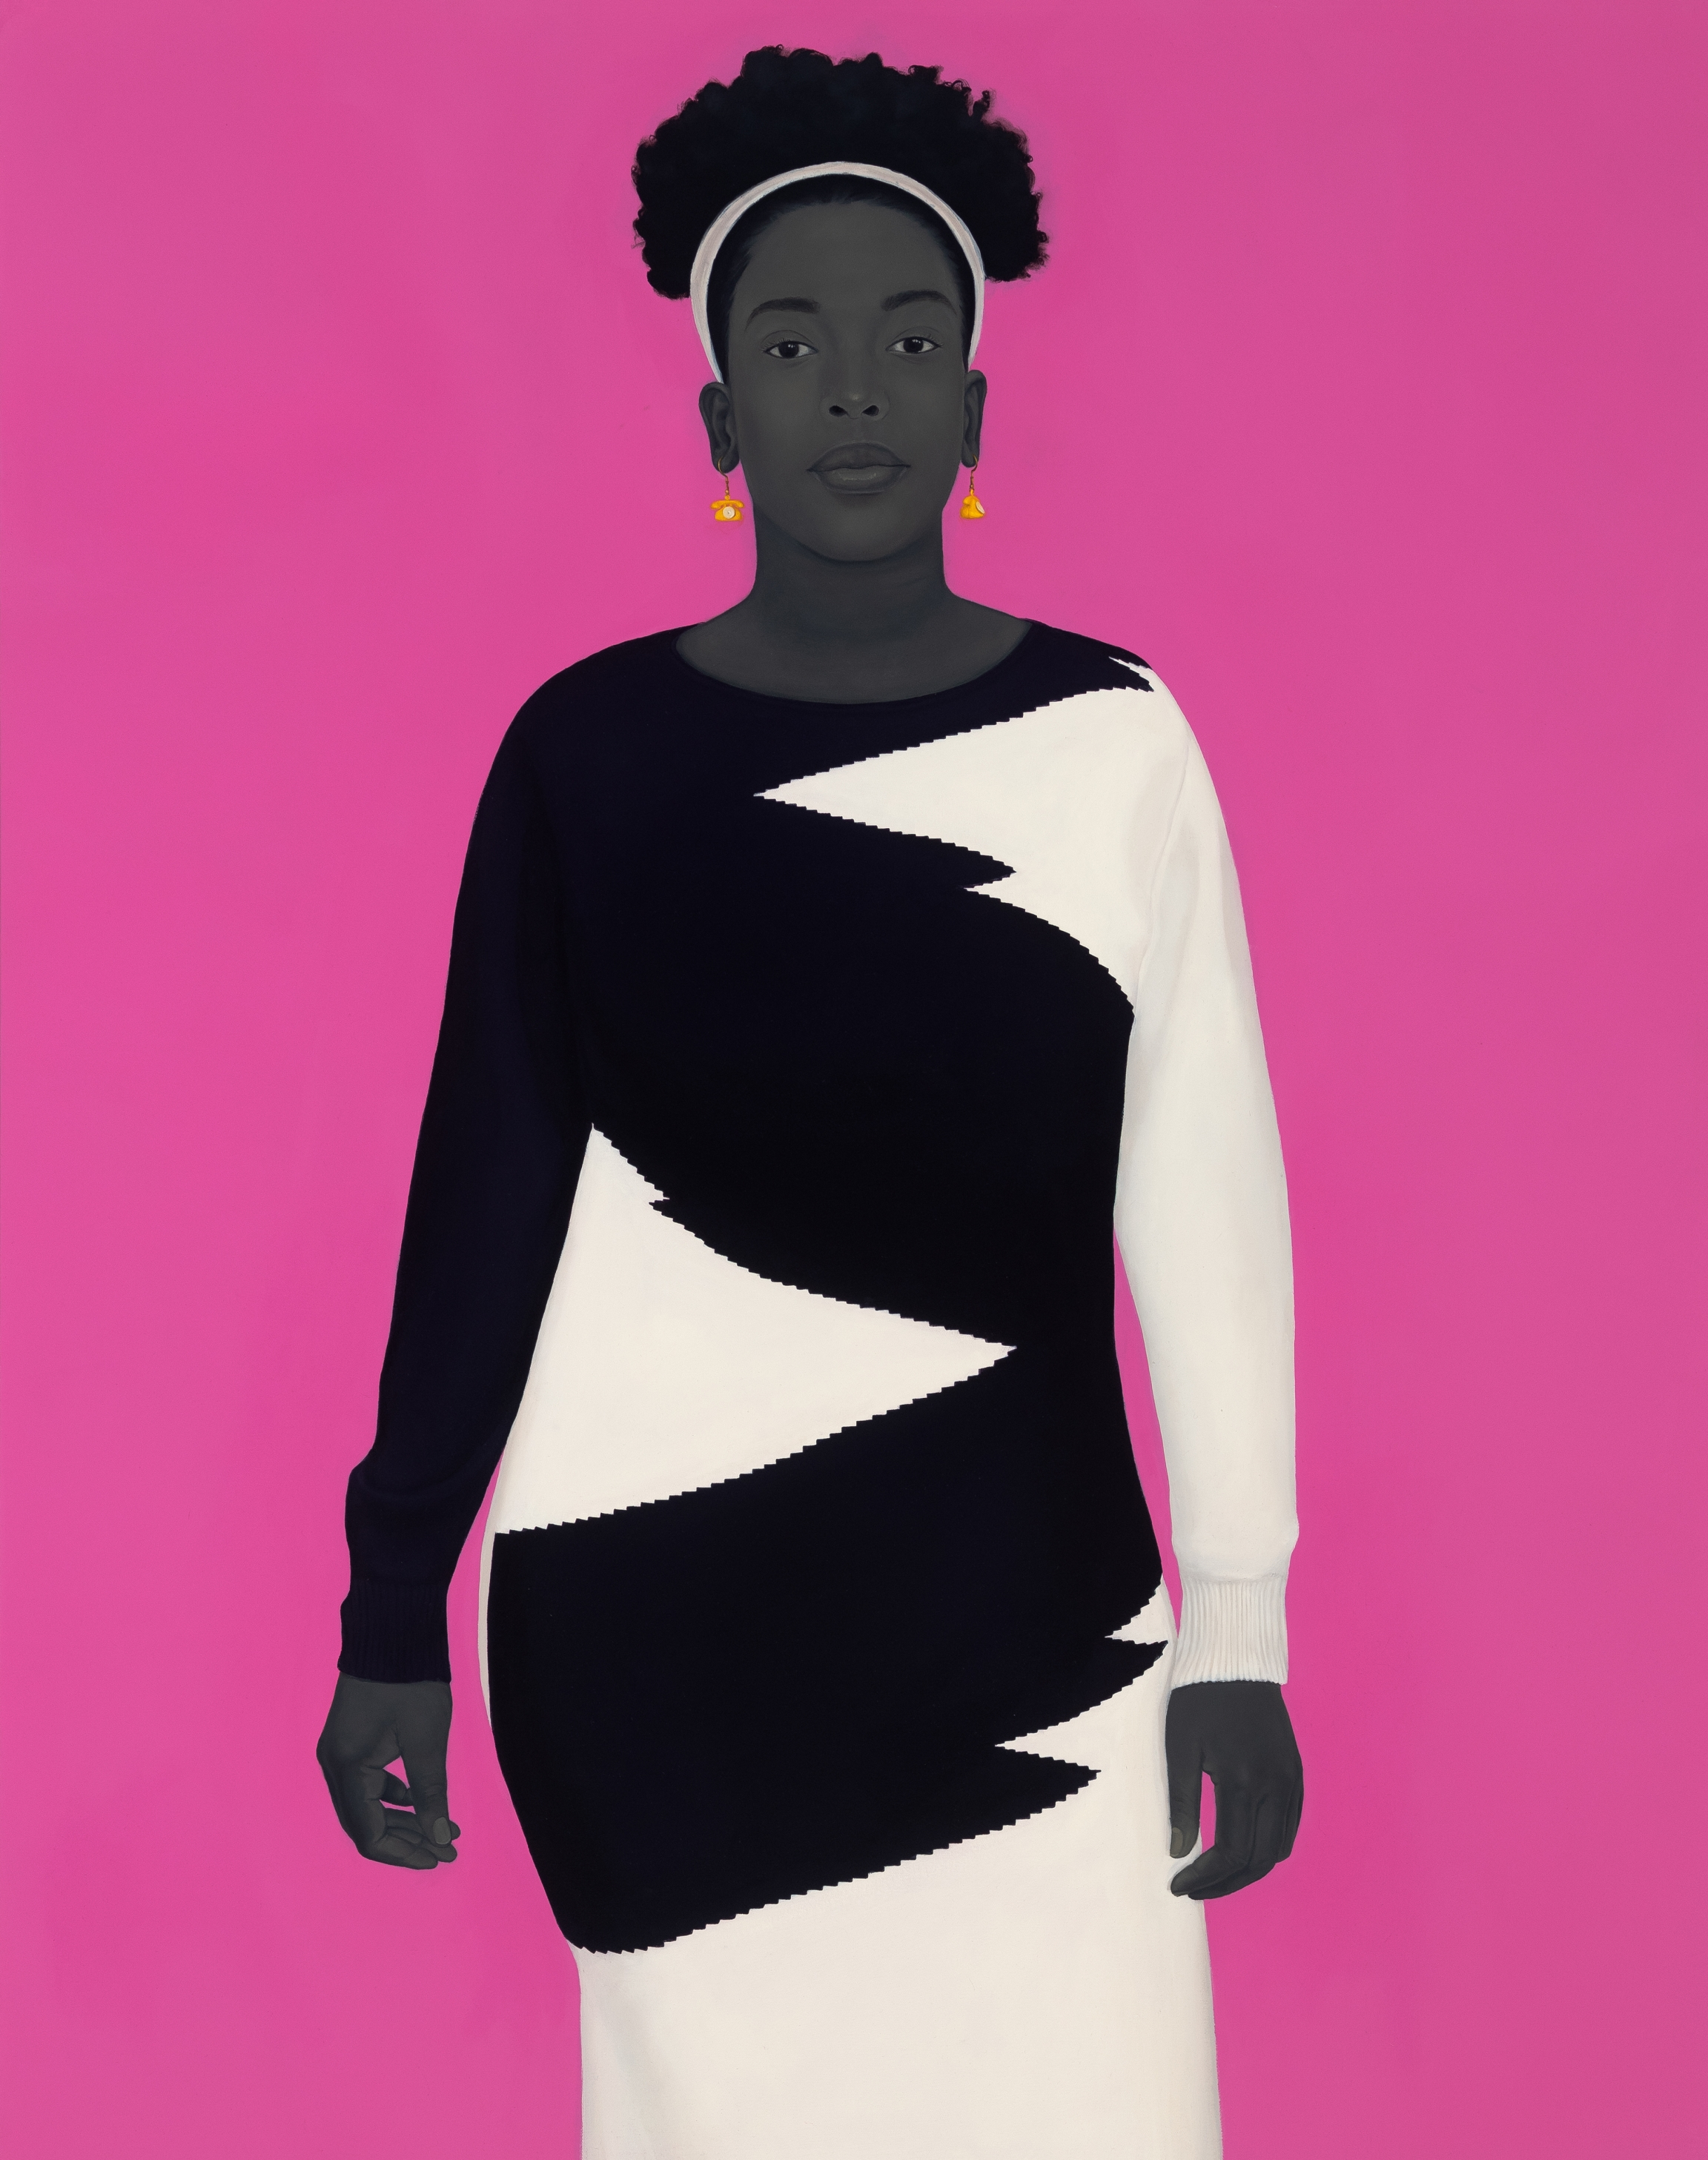 """""""Sometimes the king is a woman,"""" 2019, copyright Amy Sherald."""